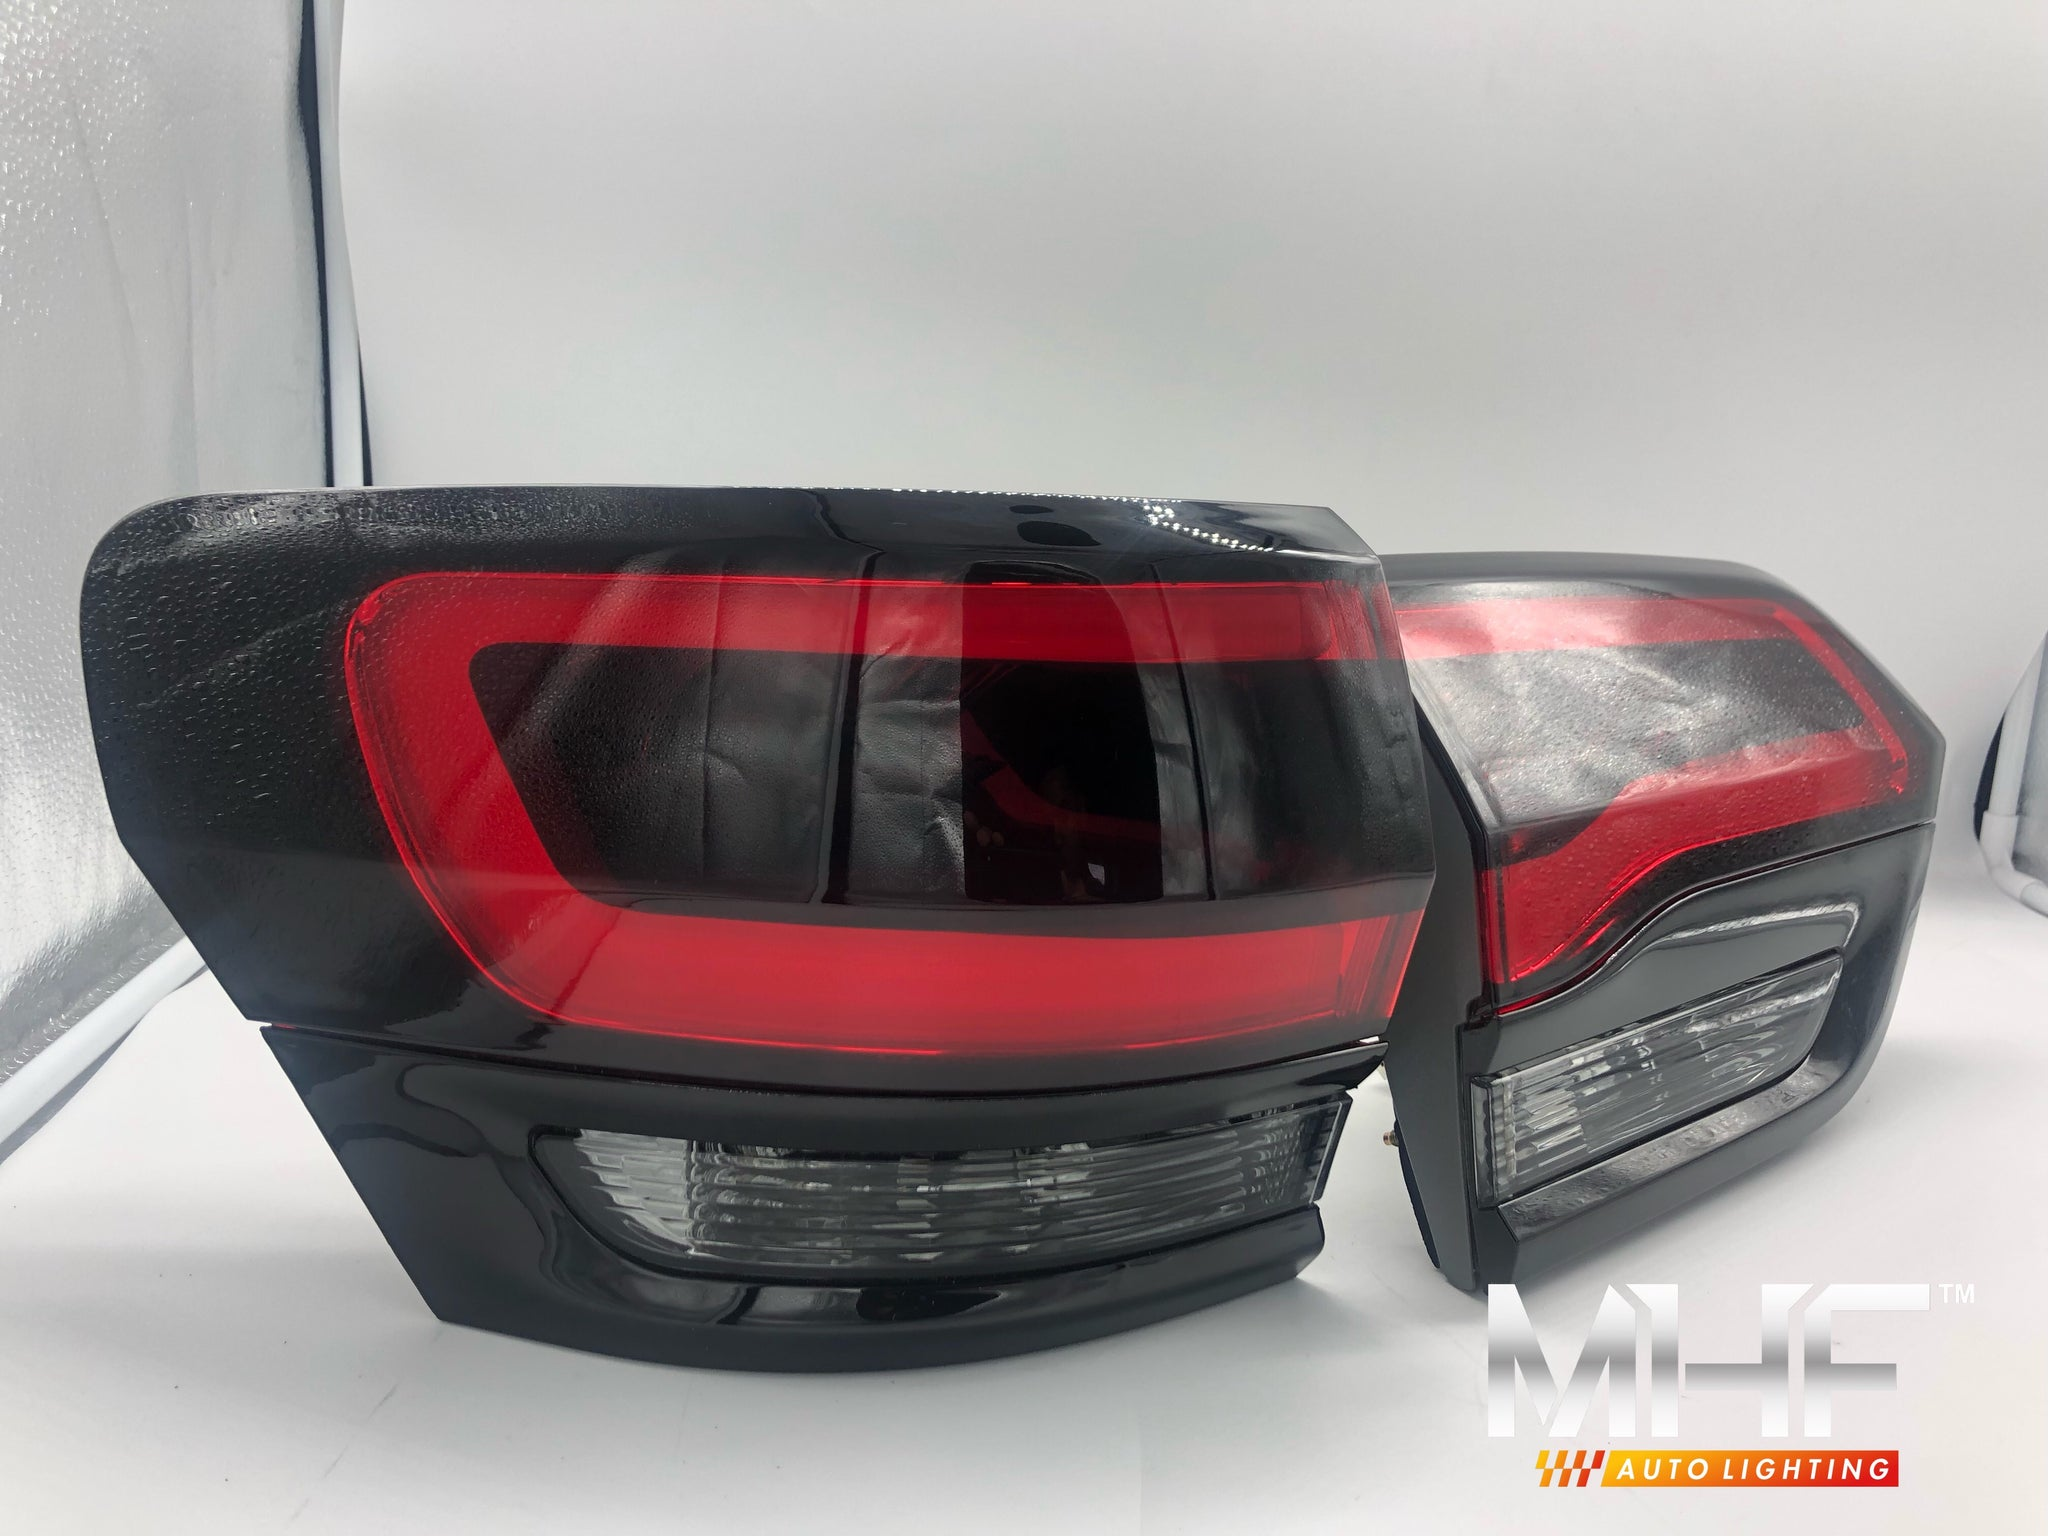 Painted Gloss Black Design LED Taillights 2014-2020 Jeep WK2